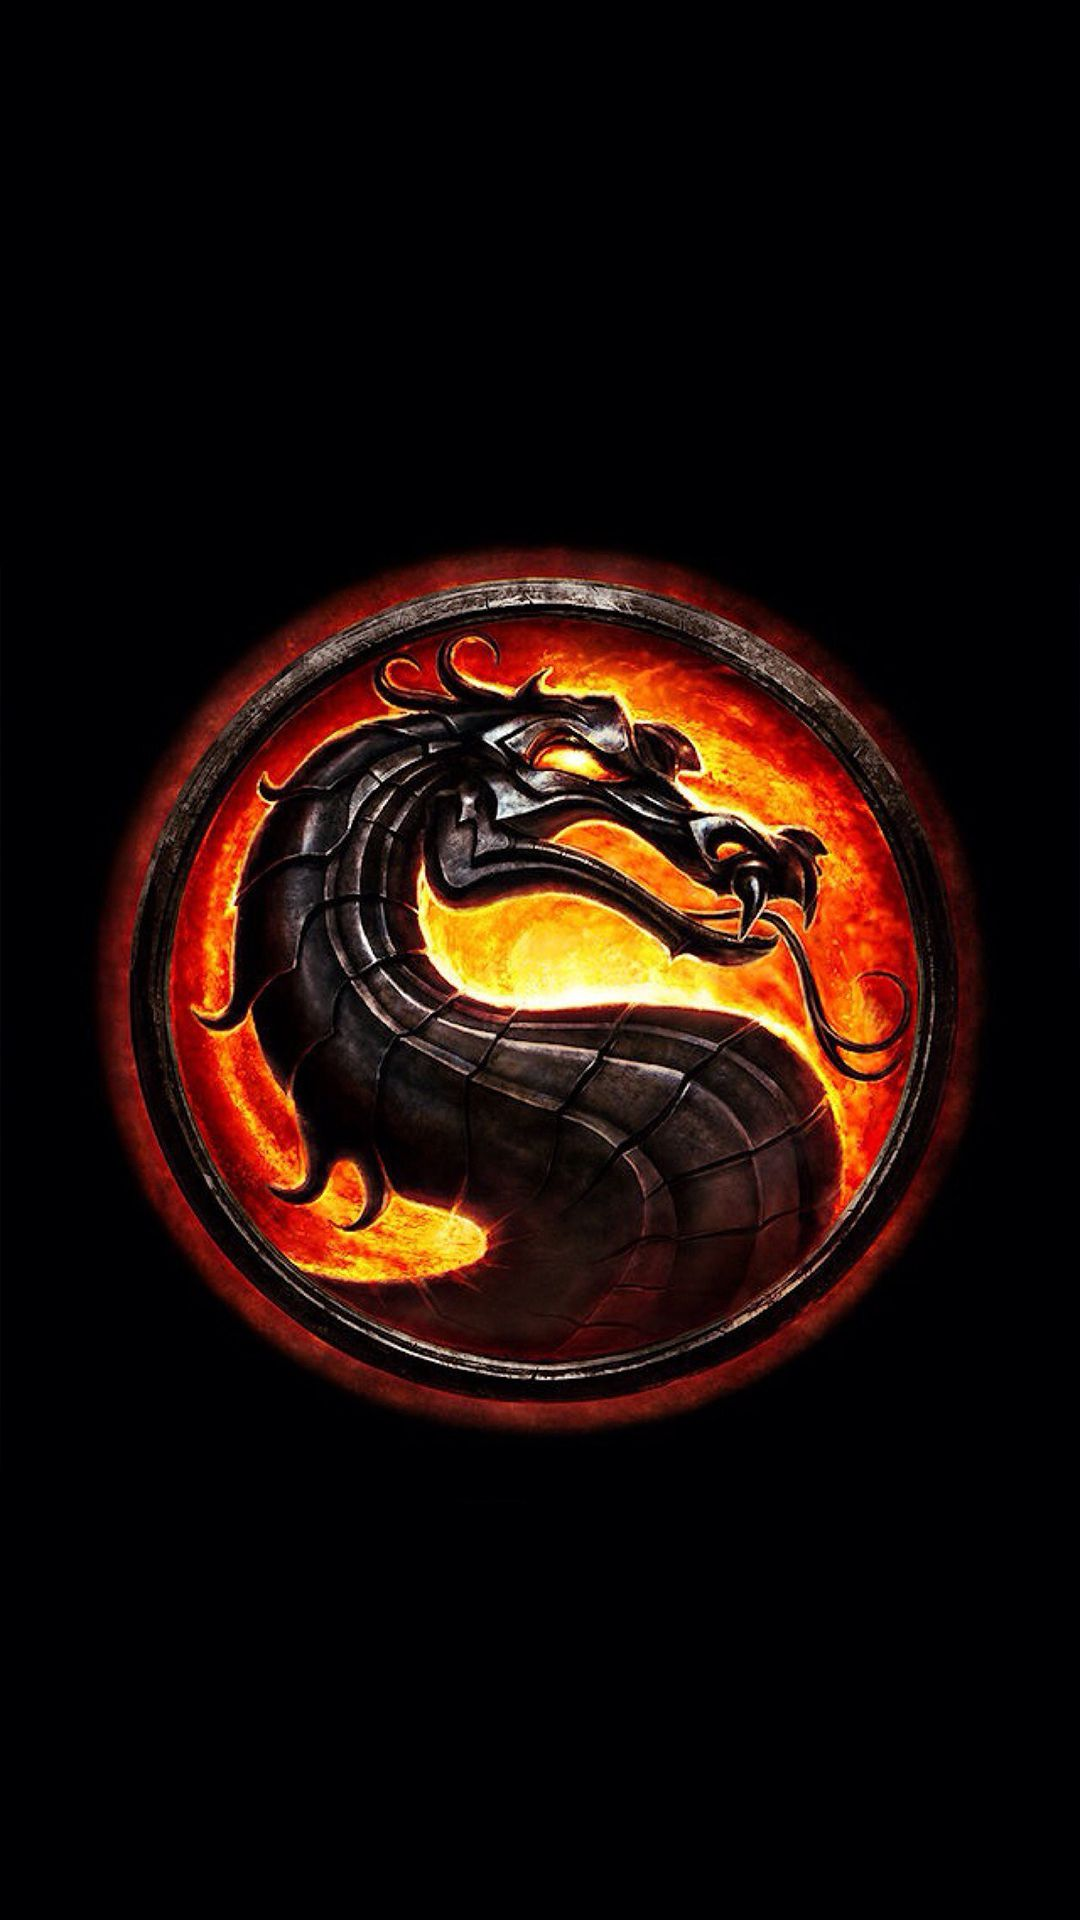 Pin by Beekoo on Art (With images) Mortal kombat art